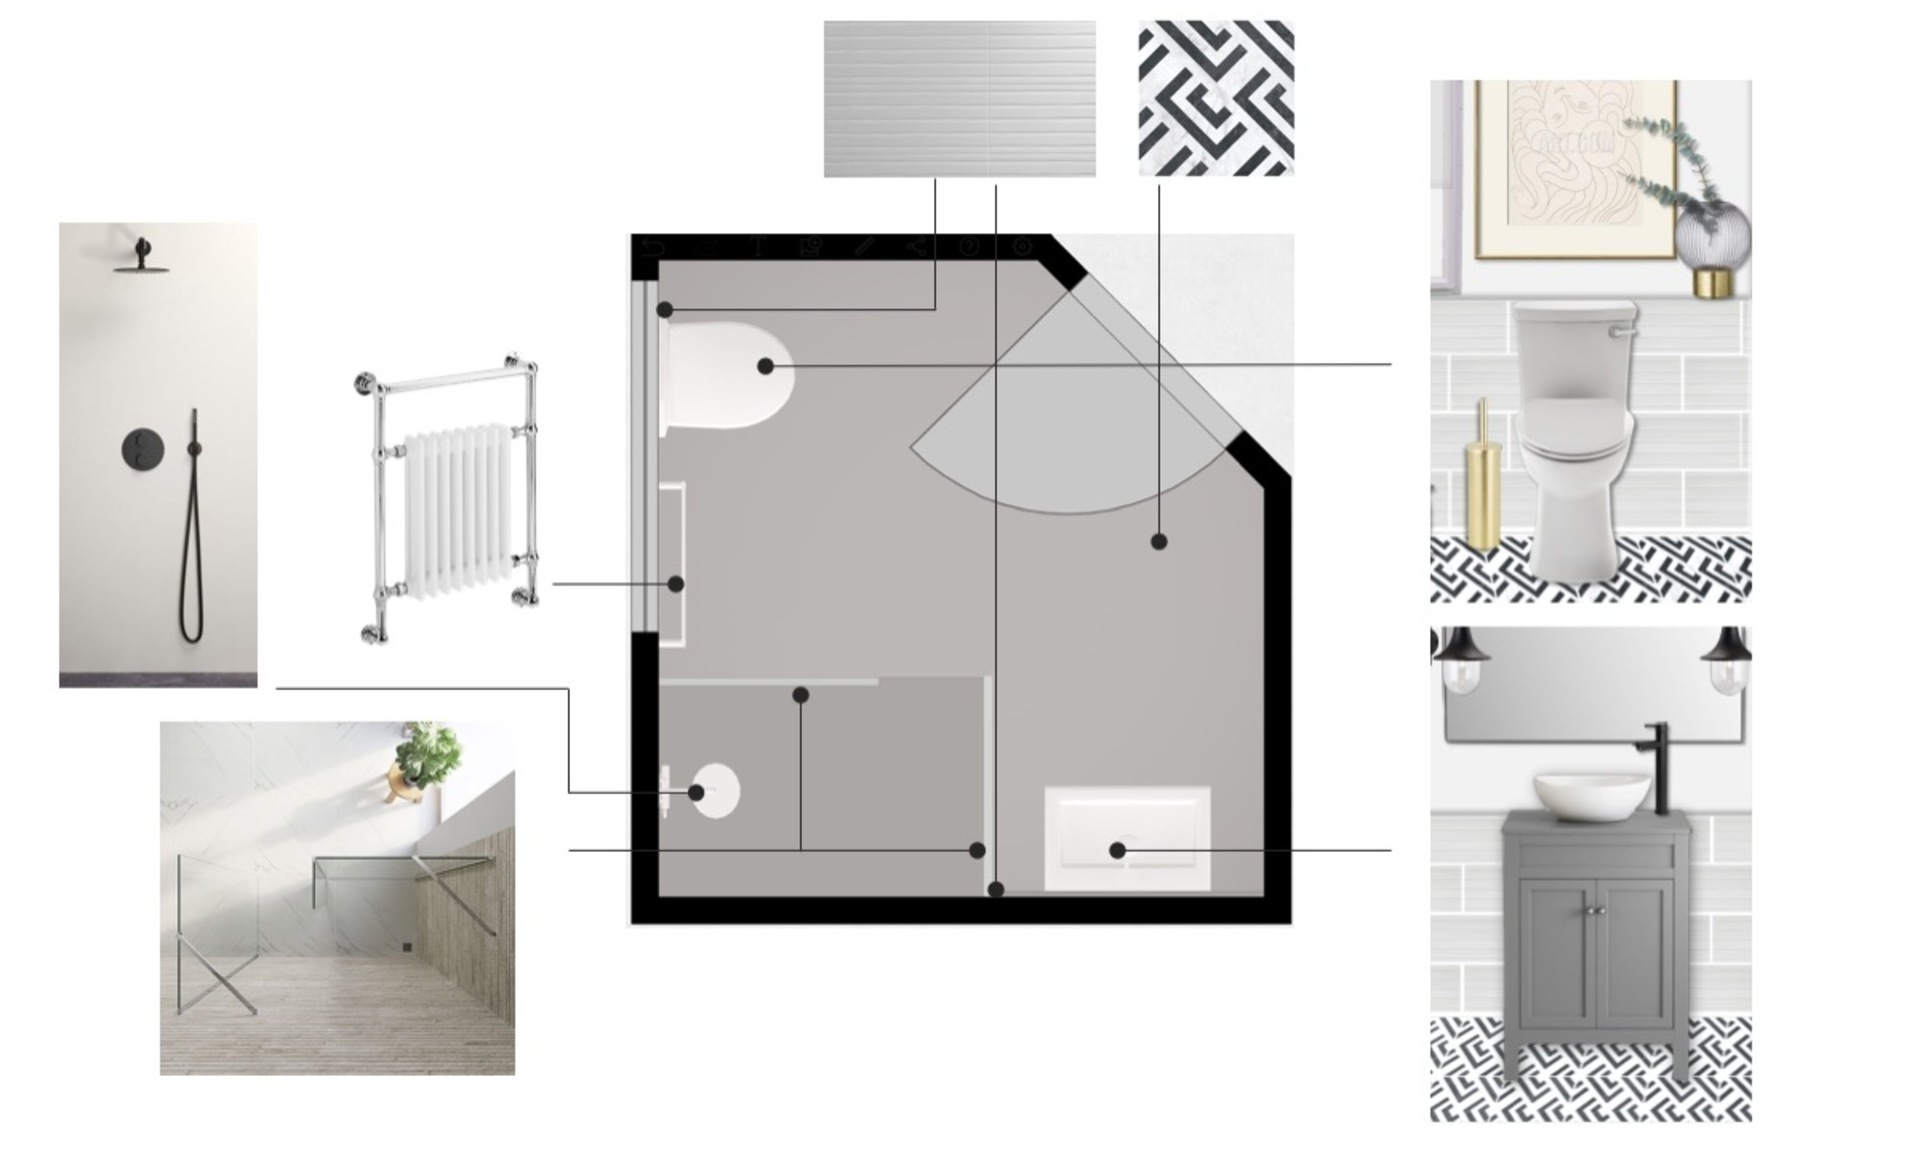 Floor plan showing a traditional small bathroom with monochrome patterned floor tiles and modern brass accents